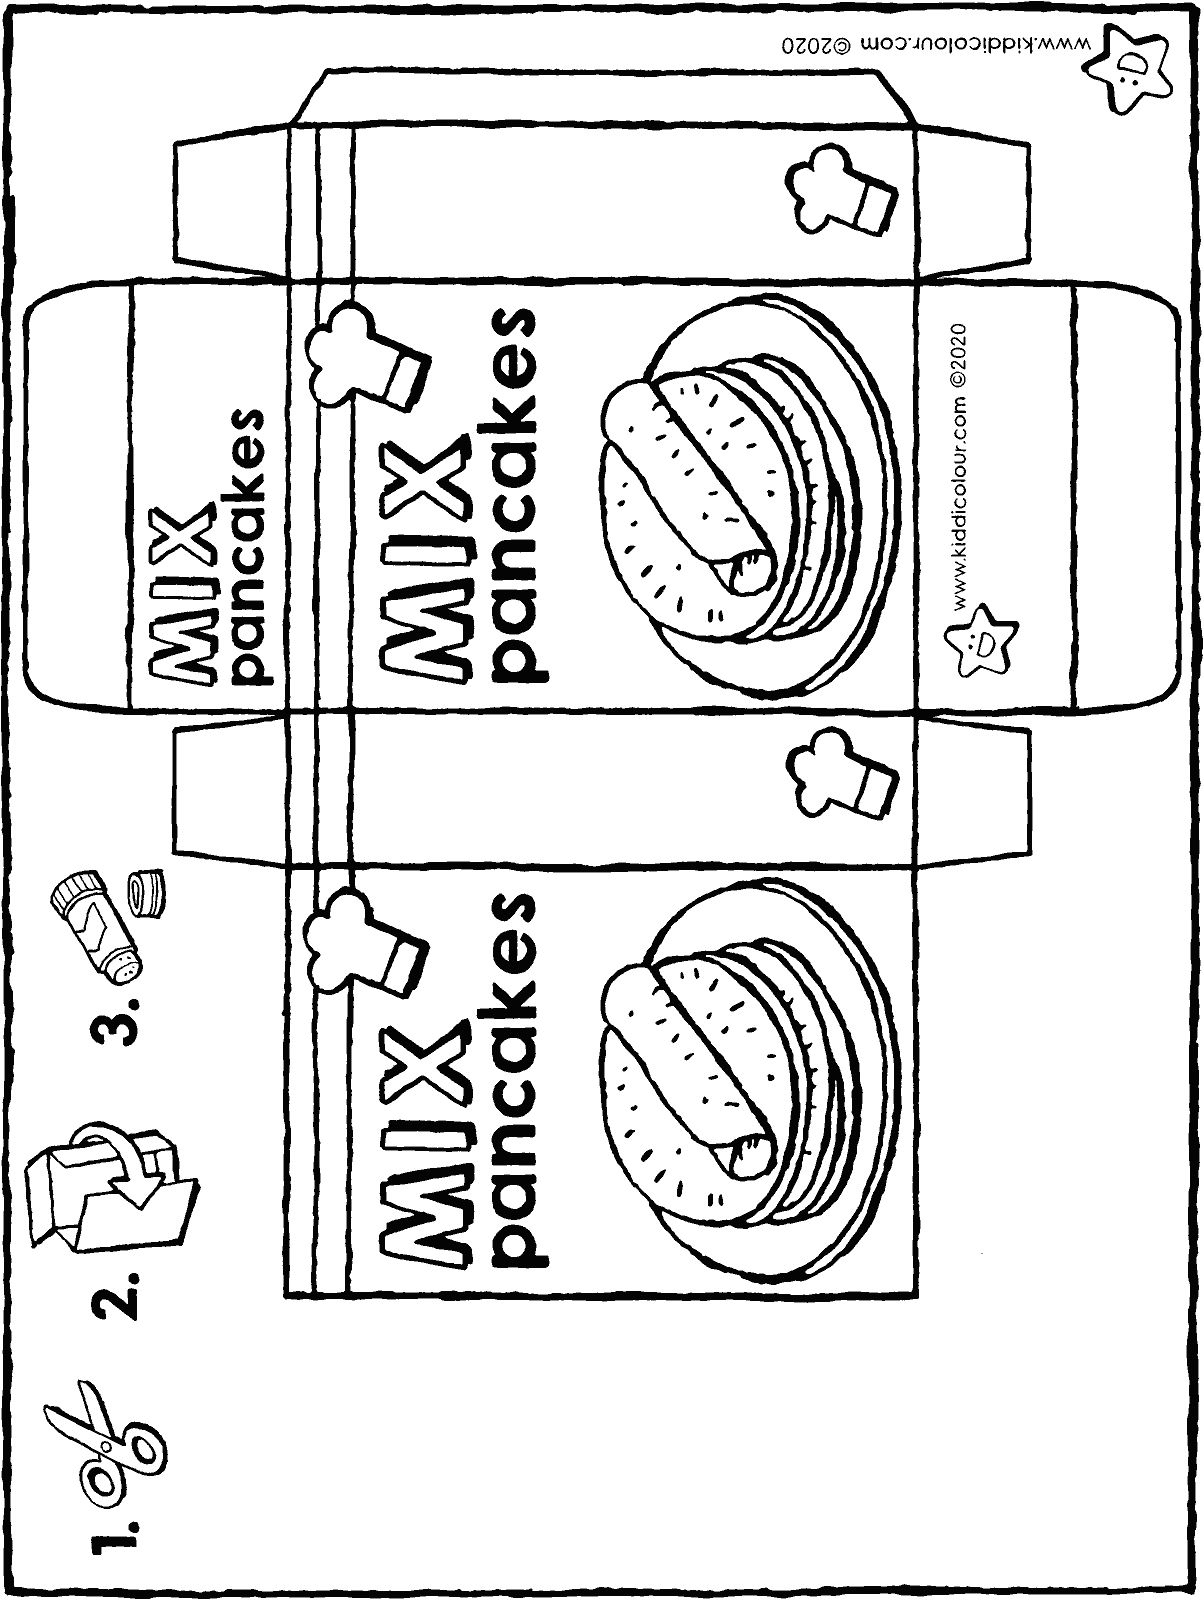 make your own pancake mix packet colouring page drawing picture 01H